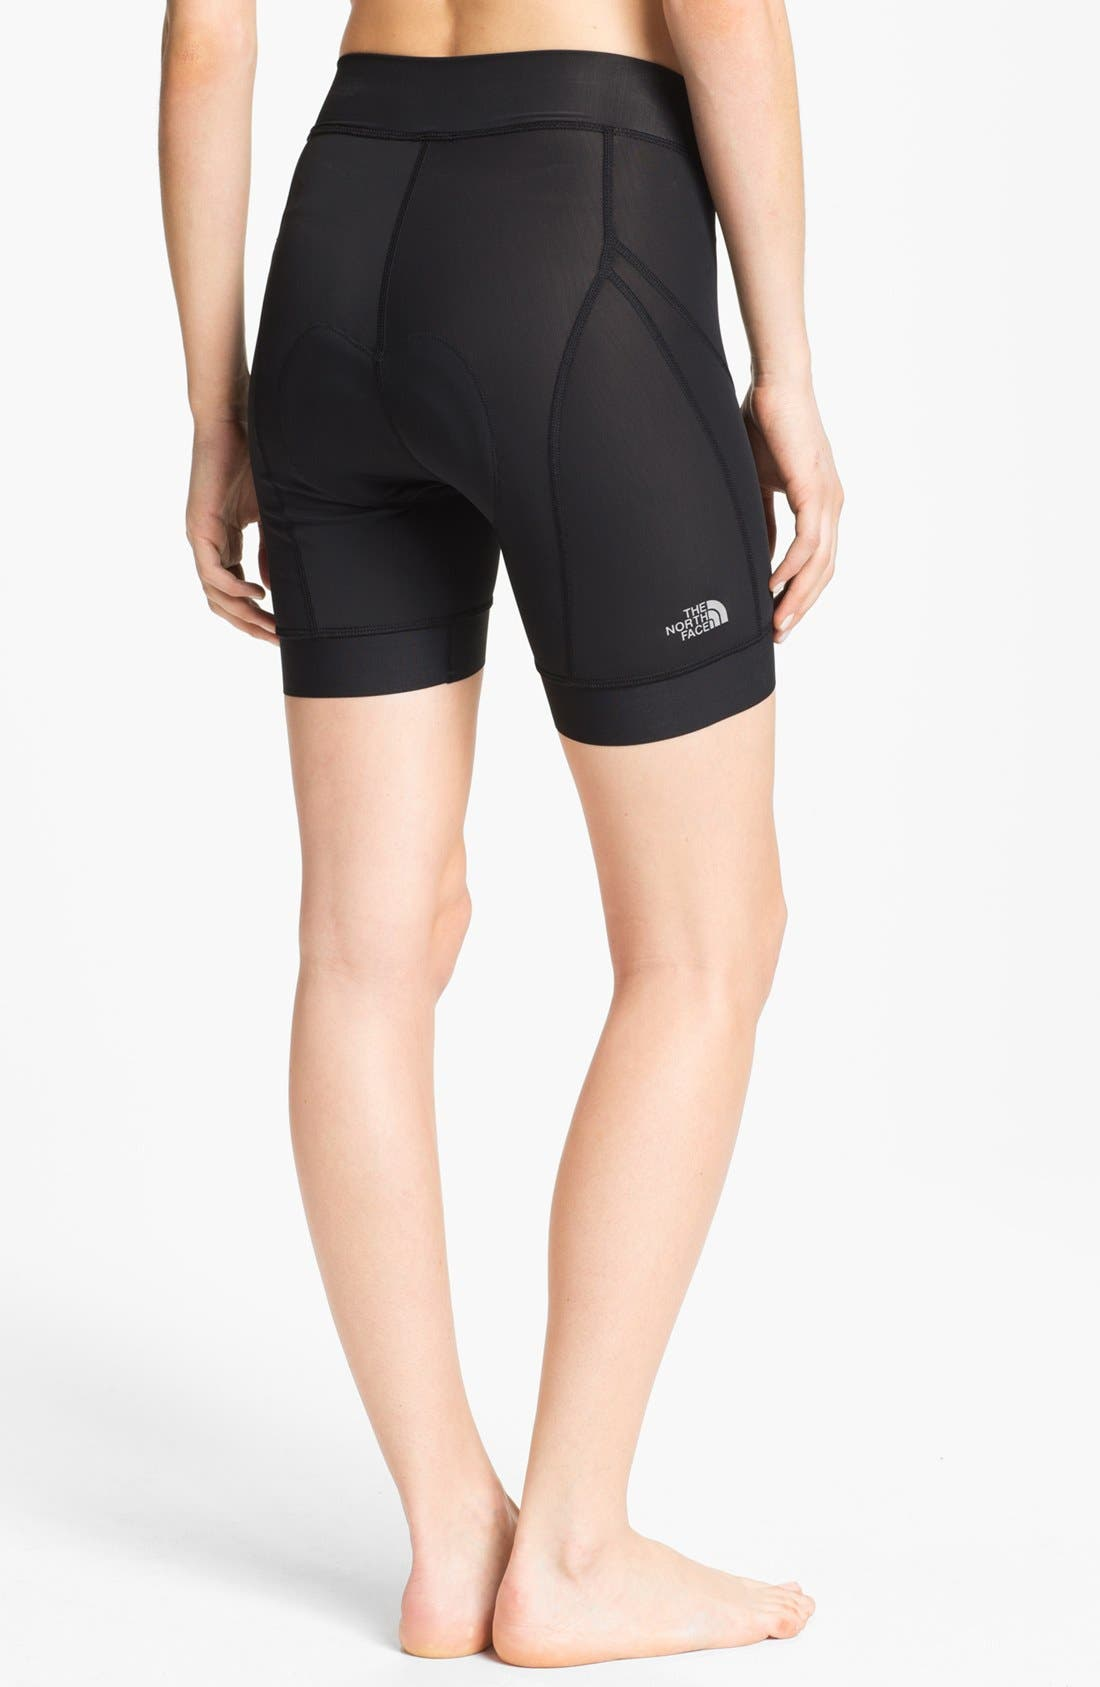 Alternate Image 2  - The North Face 'Slickrock' Padded Chamois Bike Shorts